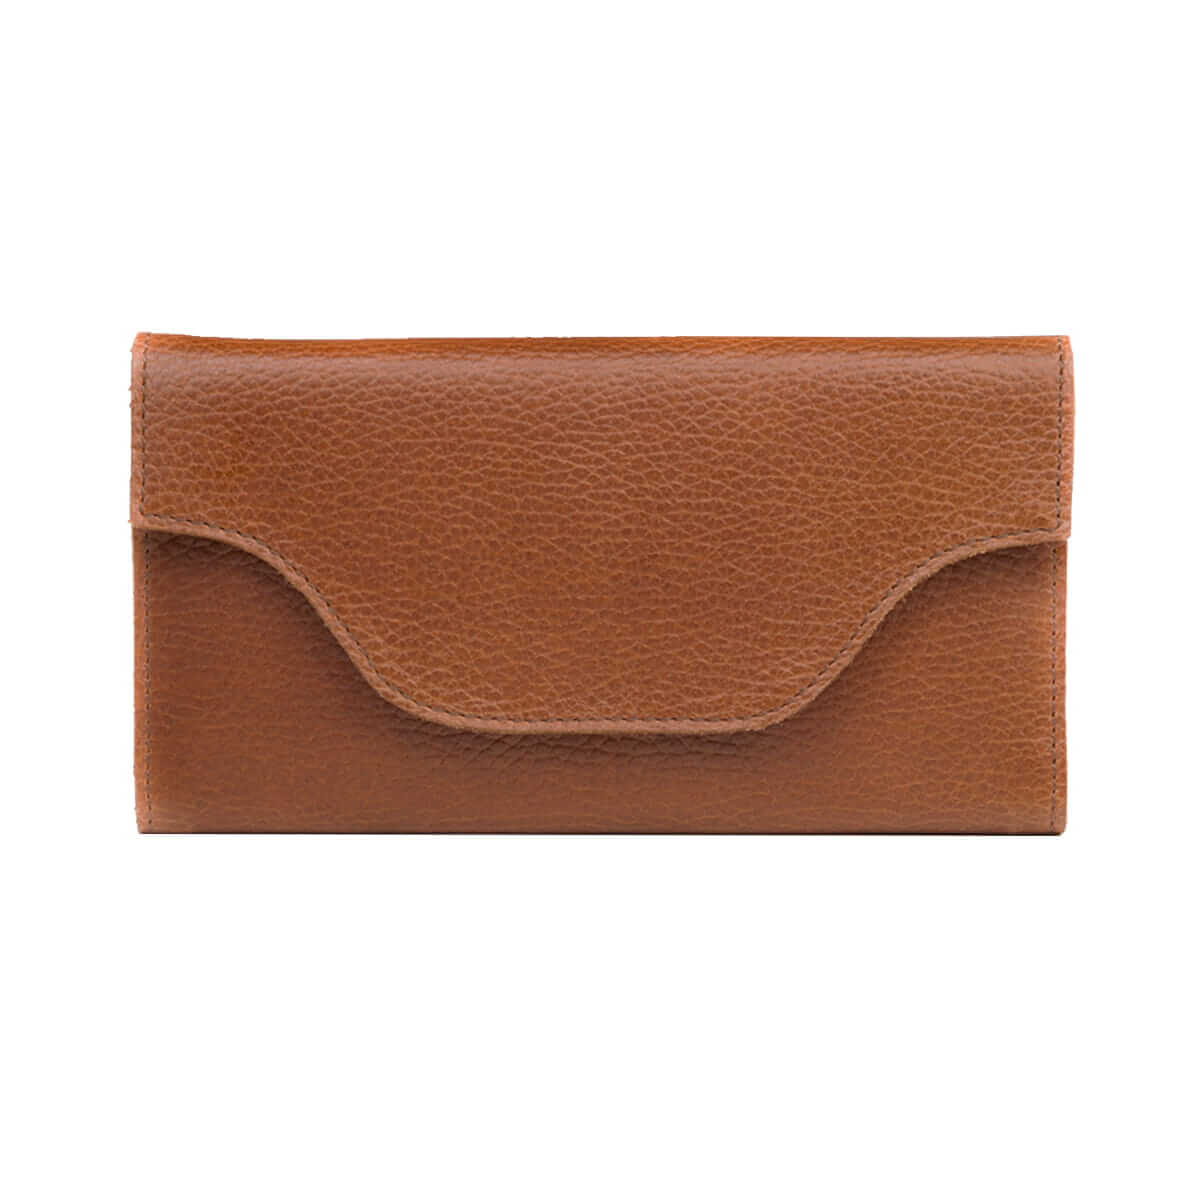 MY CARRY BAG Wallet Large (RFID) - rambler brandy